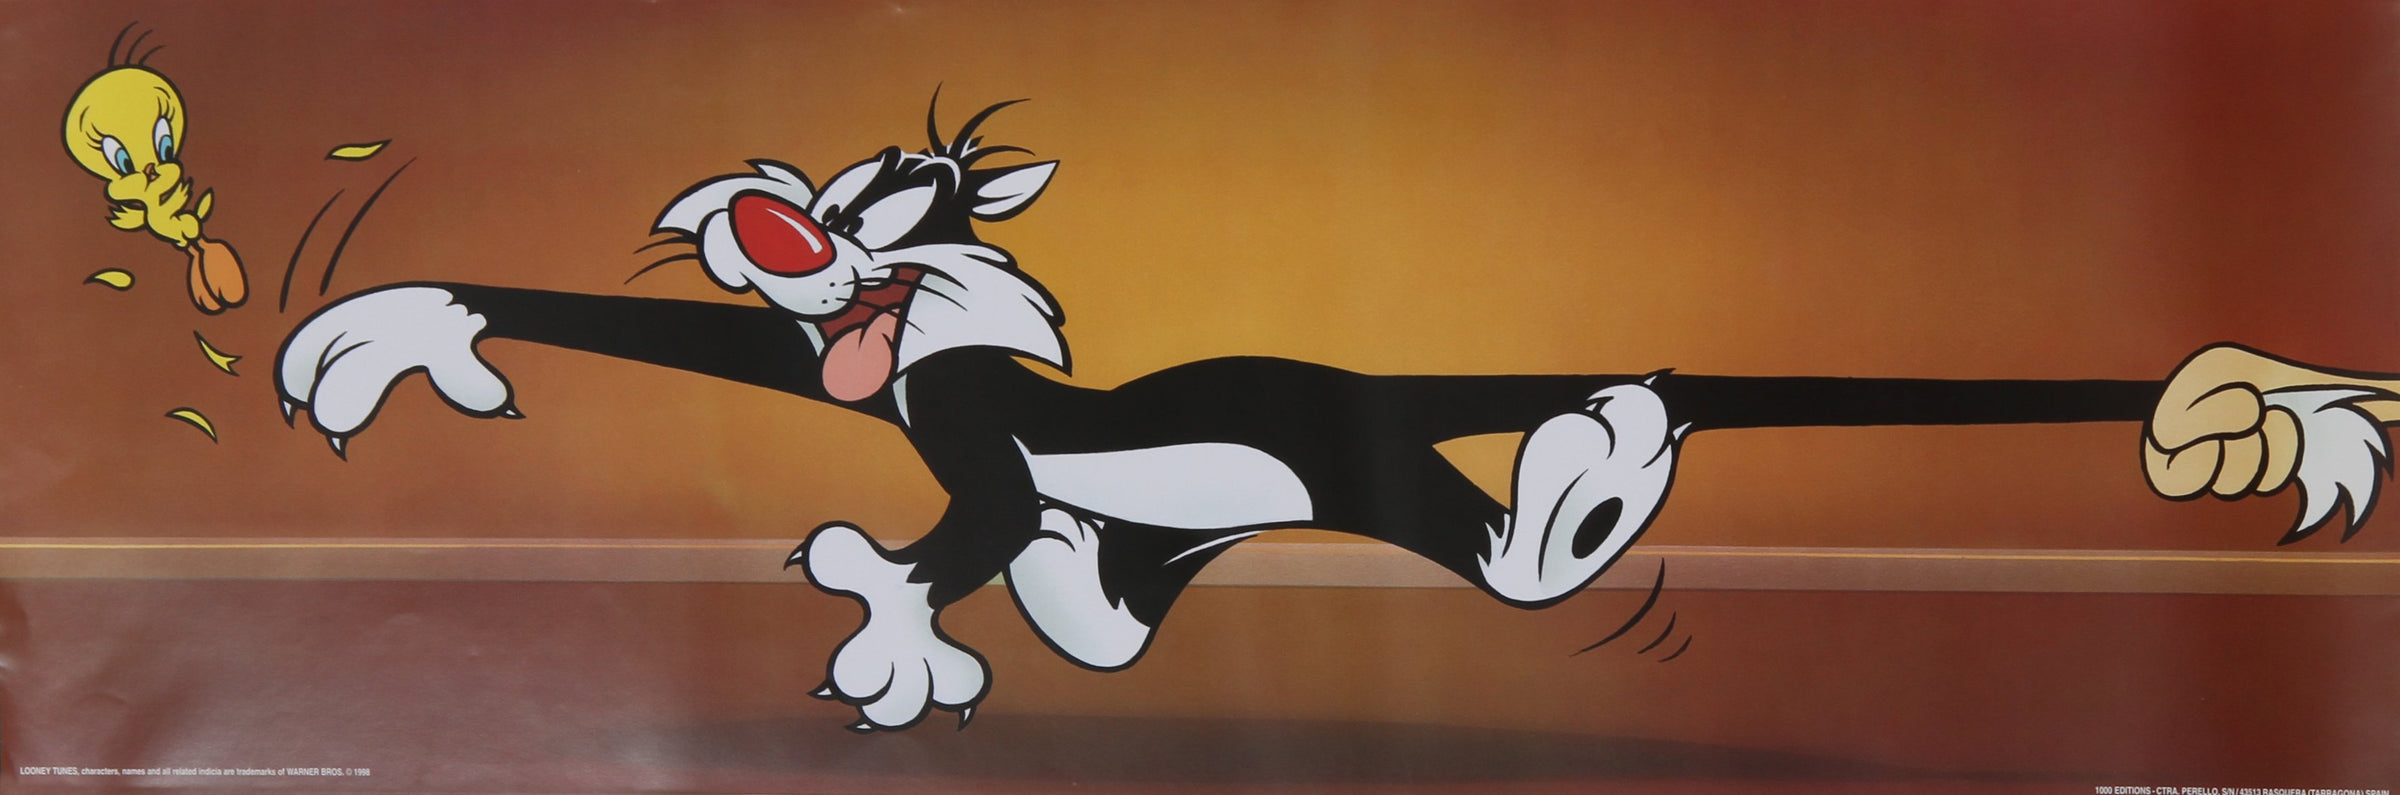 Warner Bros. Cartoons, Sylvester and Tweety Poster - RoGallery